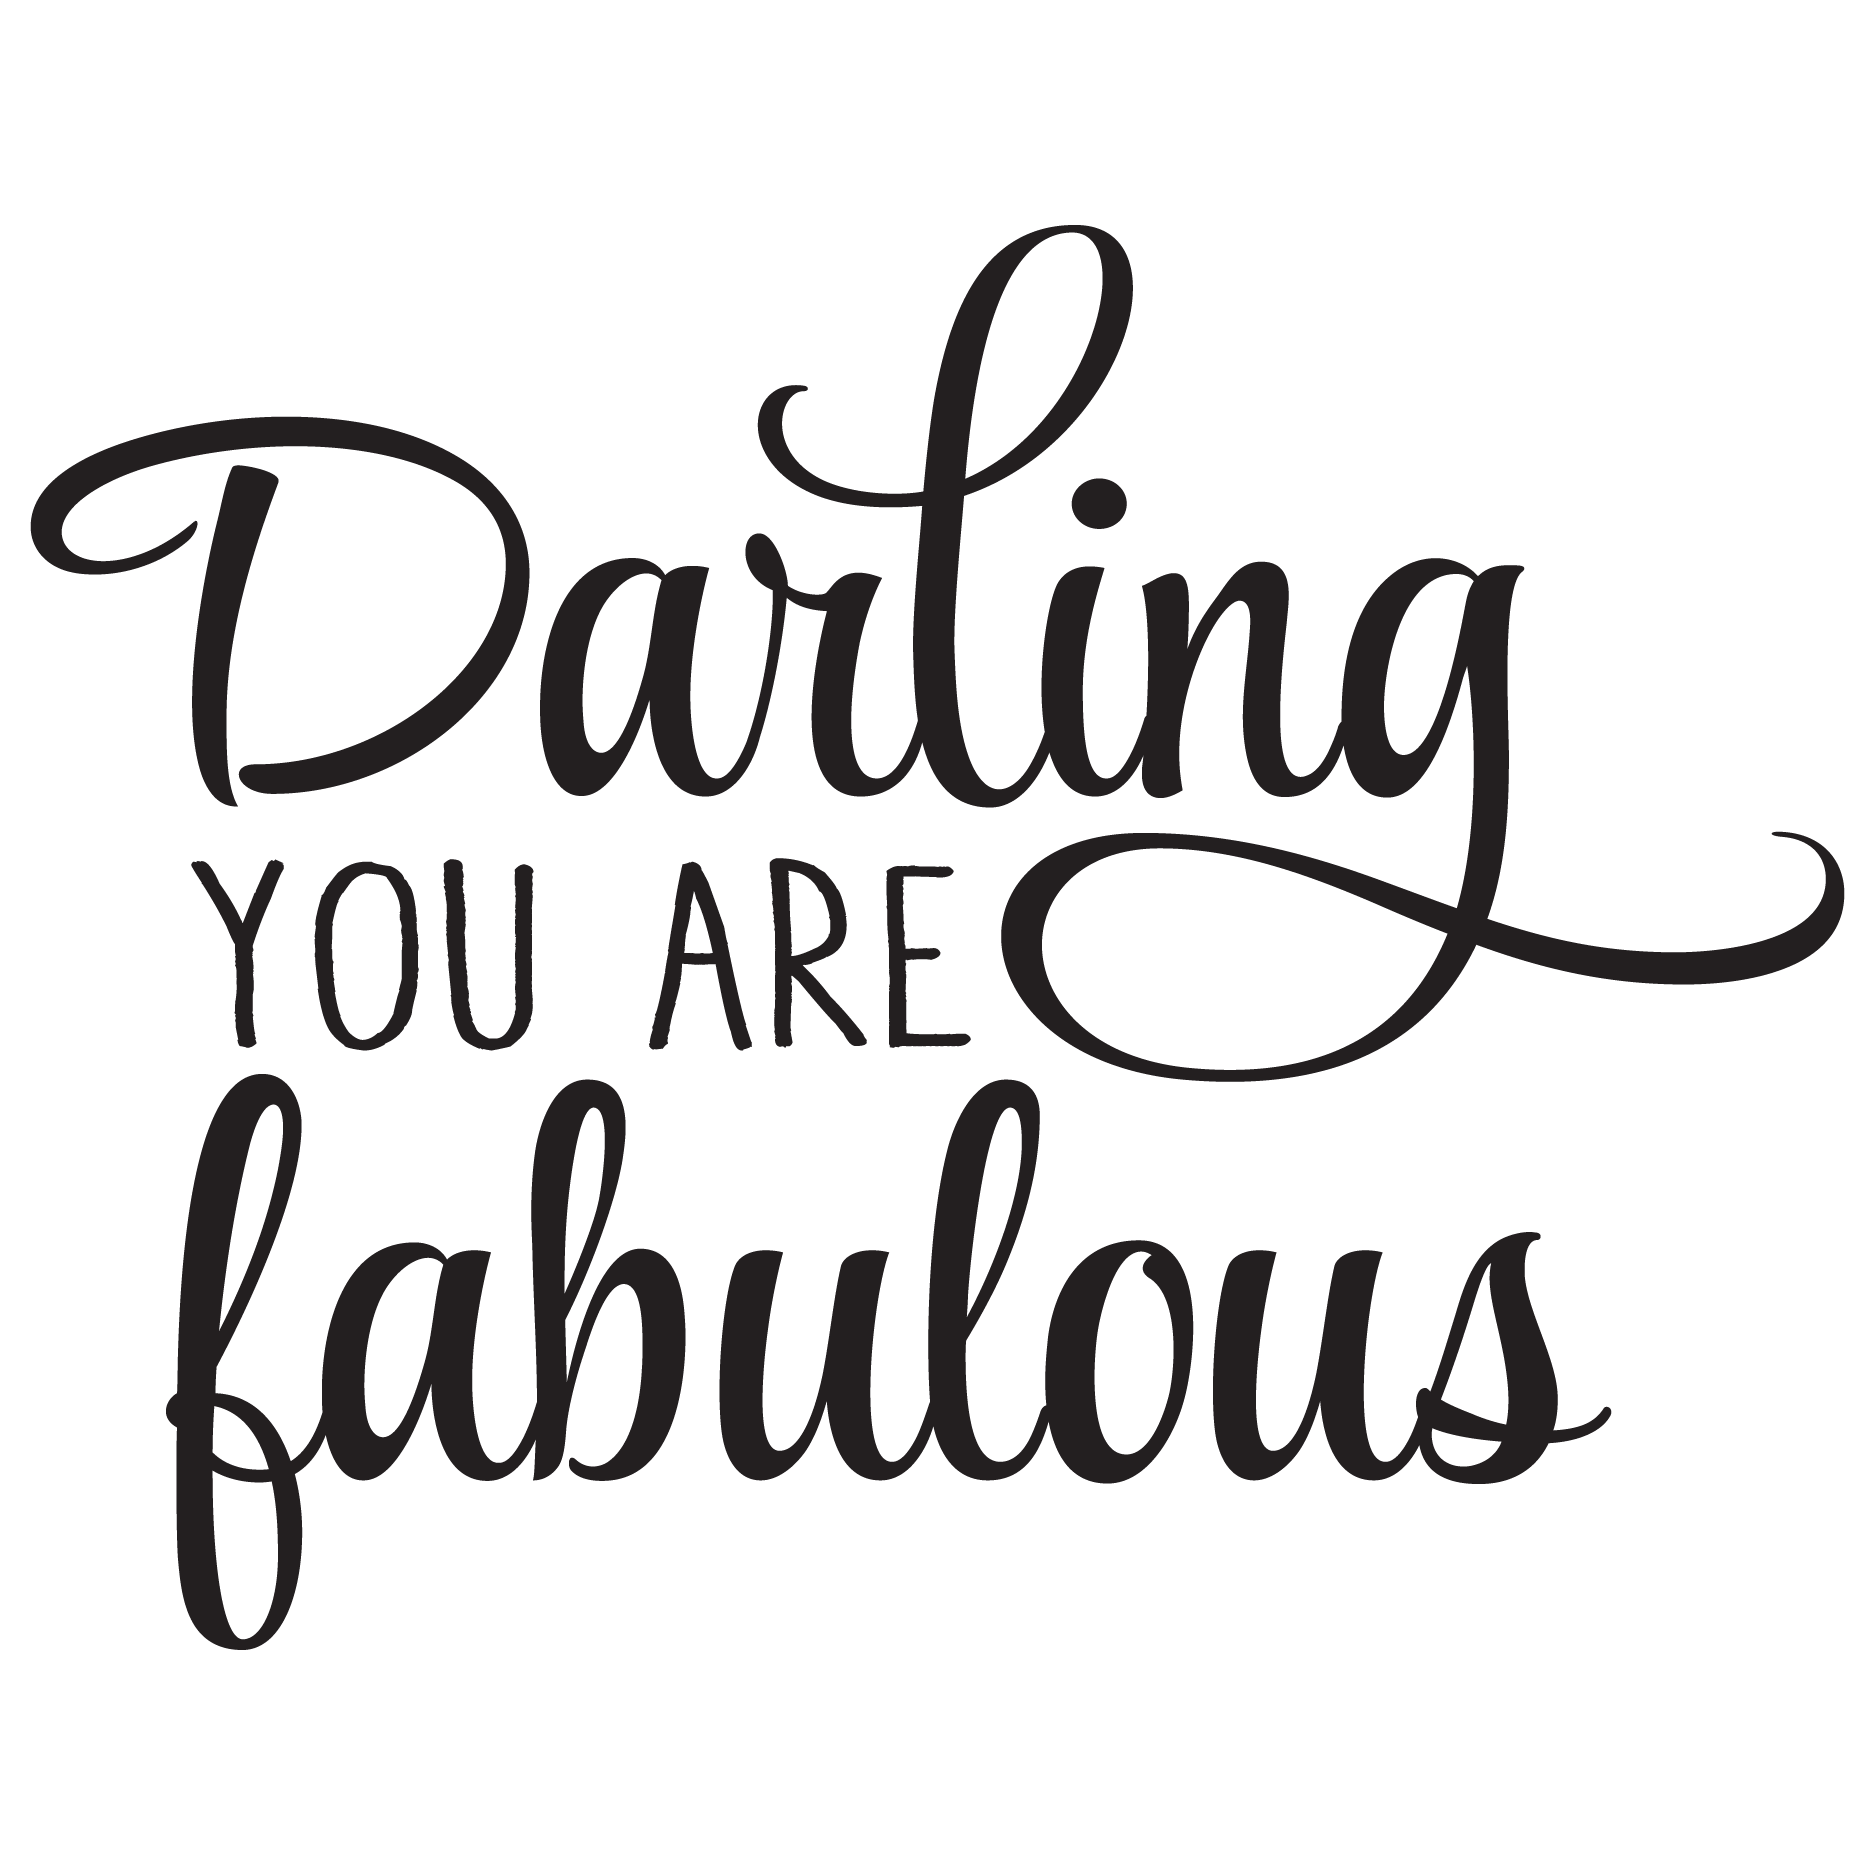 Fabulous Quotes | Darling You Are Fabulous Wall Quotes Decal Wallquotes Com